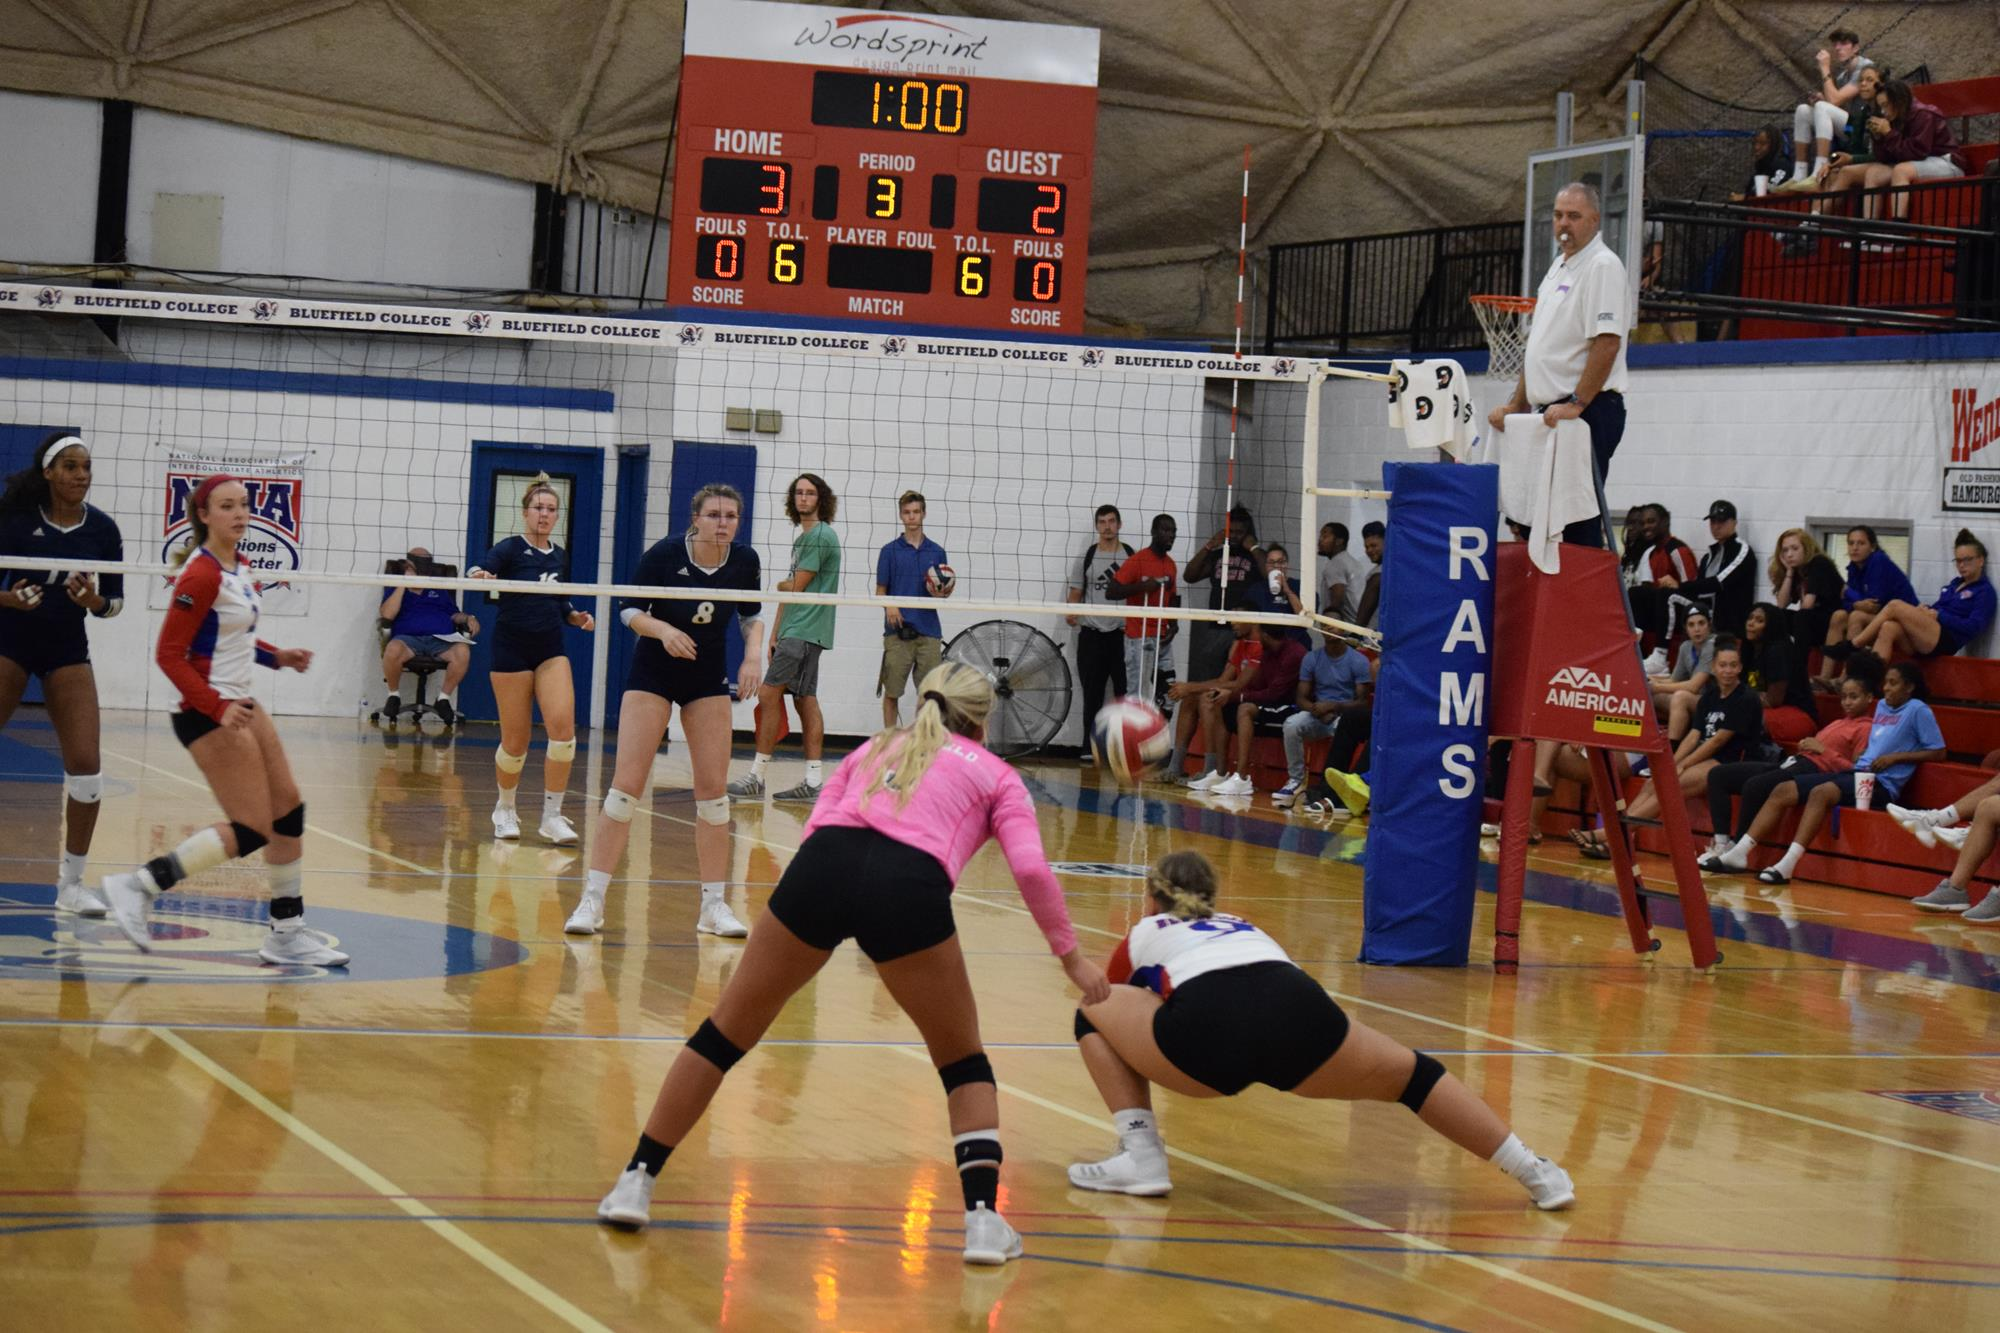 Volleyball Sweeps Ciu For Second Straight Win Bluefield College Athletics